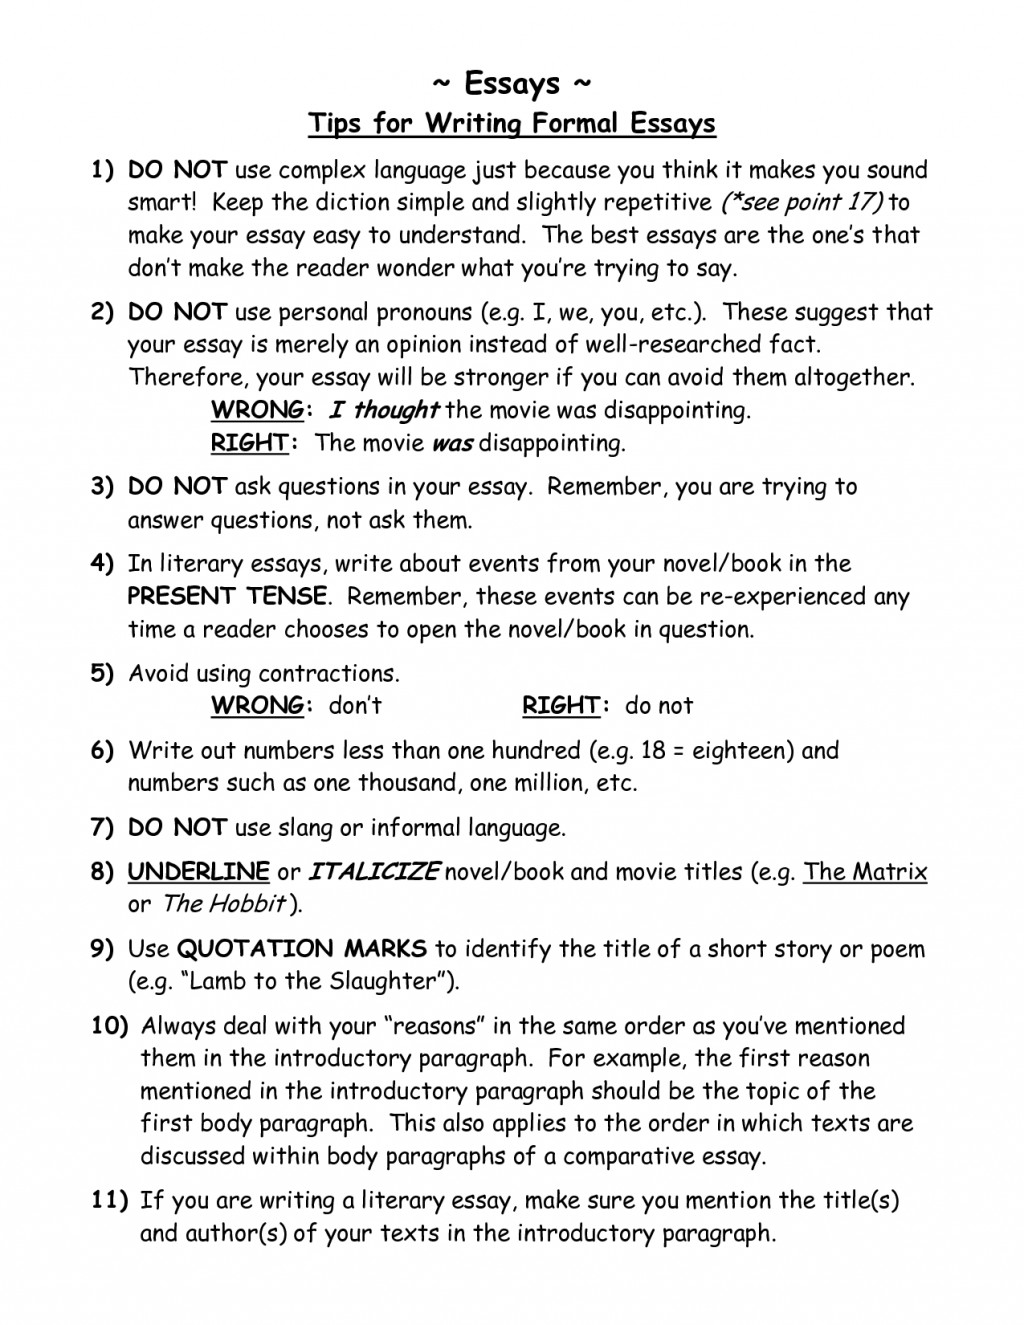 003 How To Write An Effective Essay Example Tips On Writing Essays Goal Blockety Co English Ibcmd Ppt Course Pdf Communication Samples For Ielts In Hindi Staggering A Good Literature Language Large